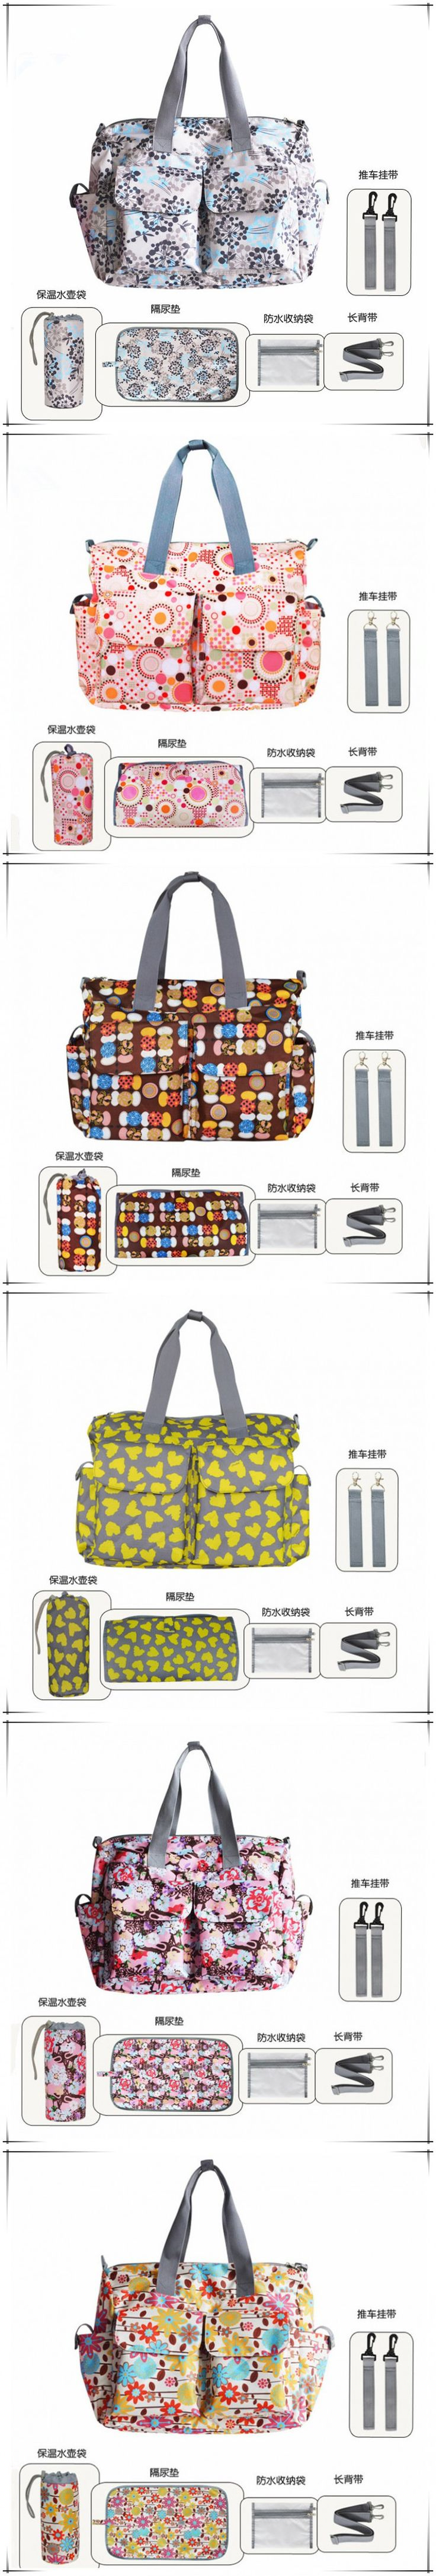 Fast Delivery Fashion Mummy Bag Hanbags Shoulder Bag Larger Capacity 40*34*16CM Zipper Dipper Bag 10 Colors Babies Care Product